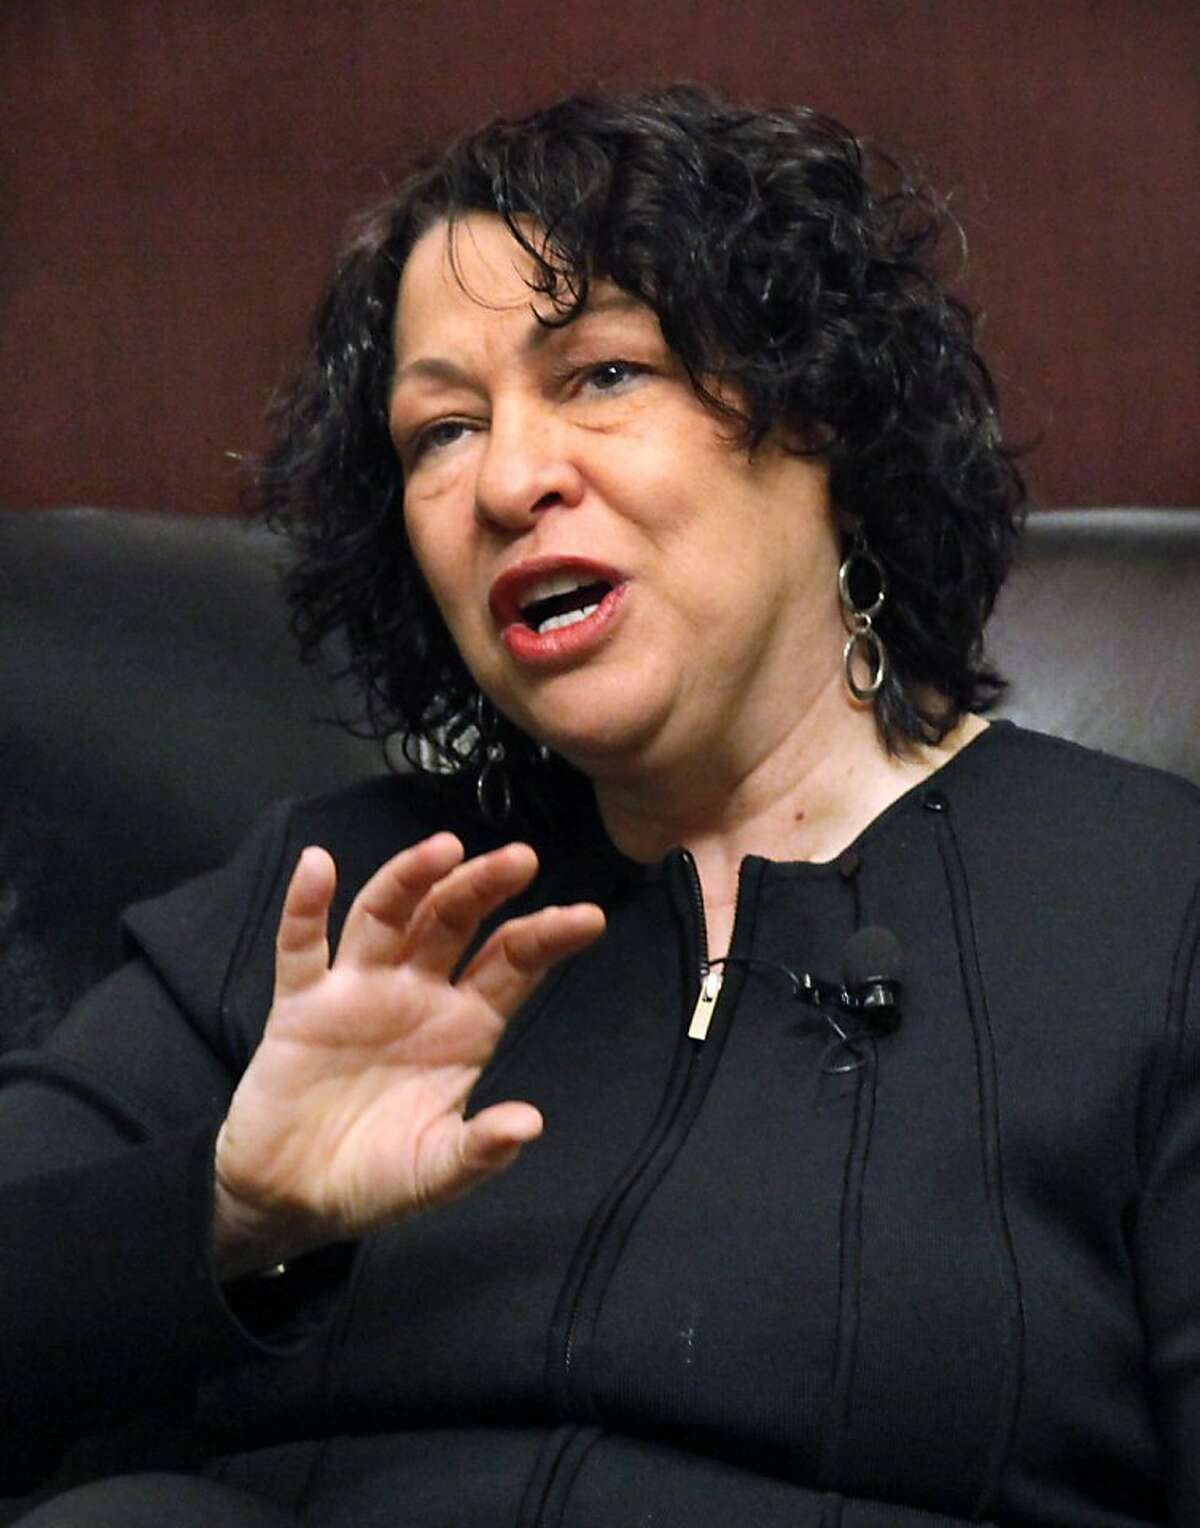 FILE - In this Jan. 31, 2011 file photo, Supreme Court Justice Sonia Sotomayor speaks at the University of Chicago Law School in Chicago. Sotomayor says she received nearly $1.2 million to write a memoir of her rise from a South Bronx housing project to the nation's highest court.